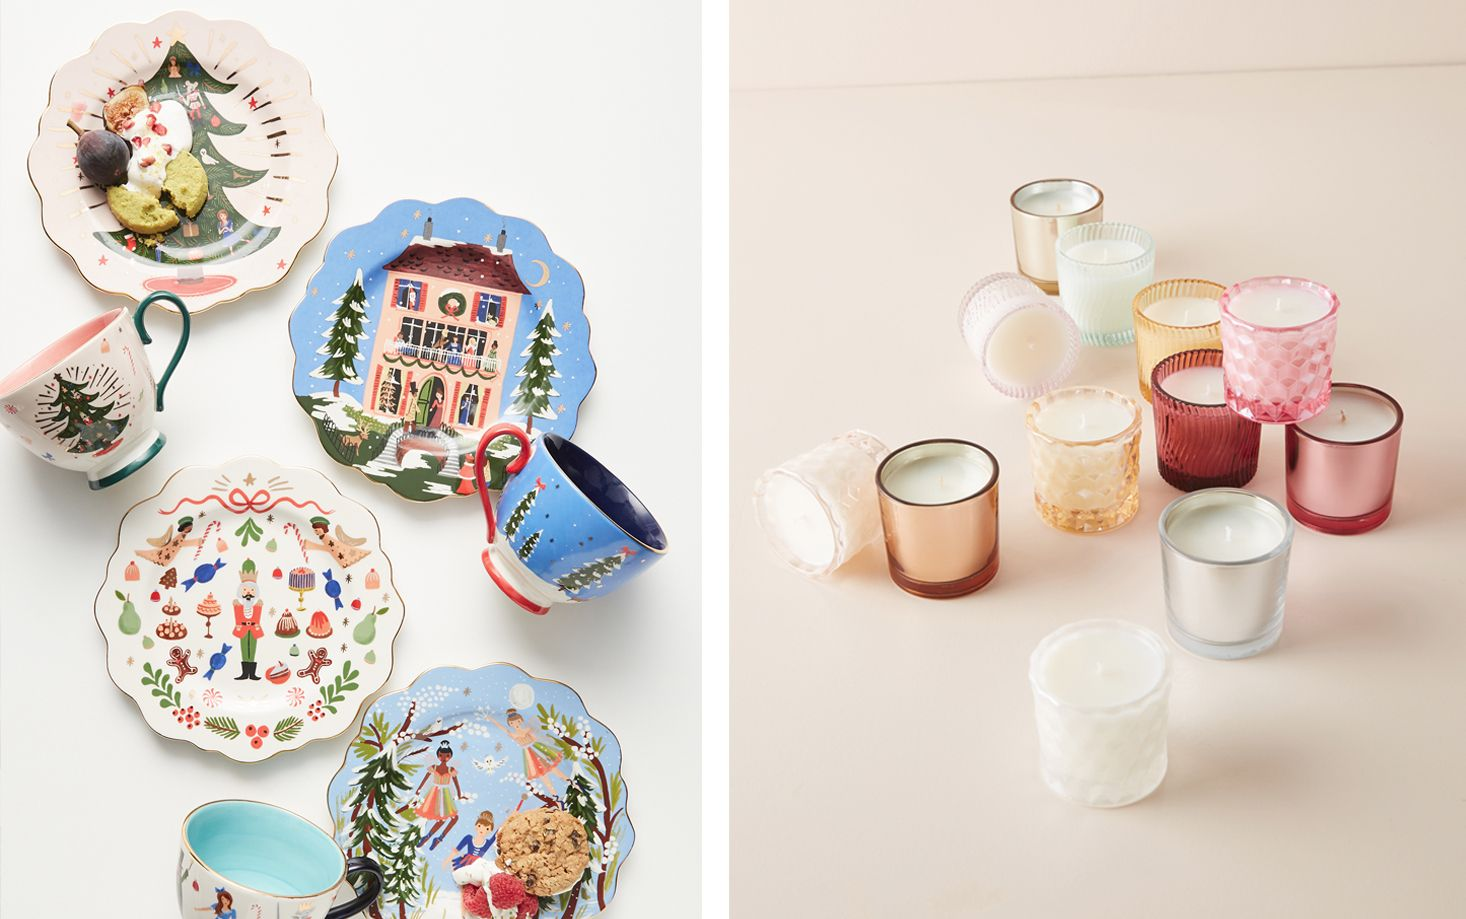 Anthropologie's New Holiday Gift Collection is Here!